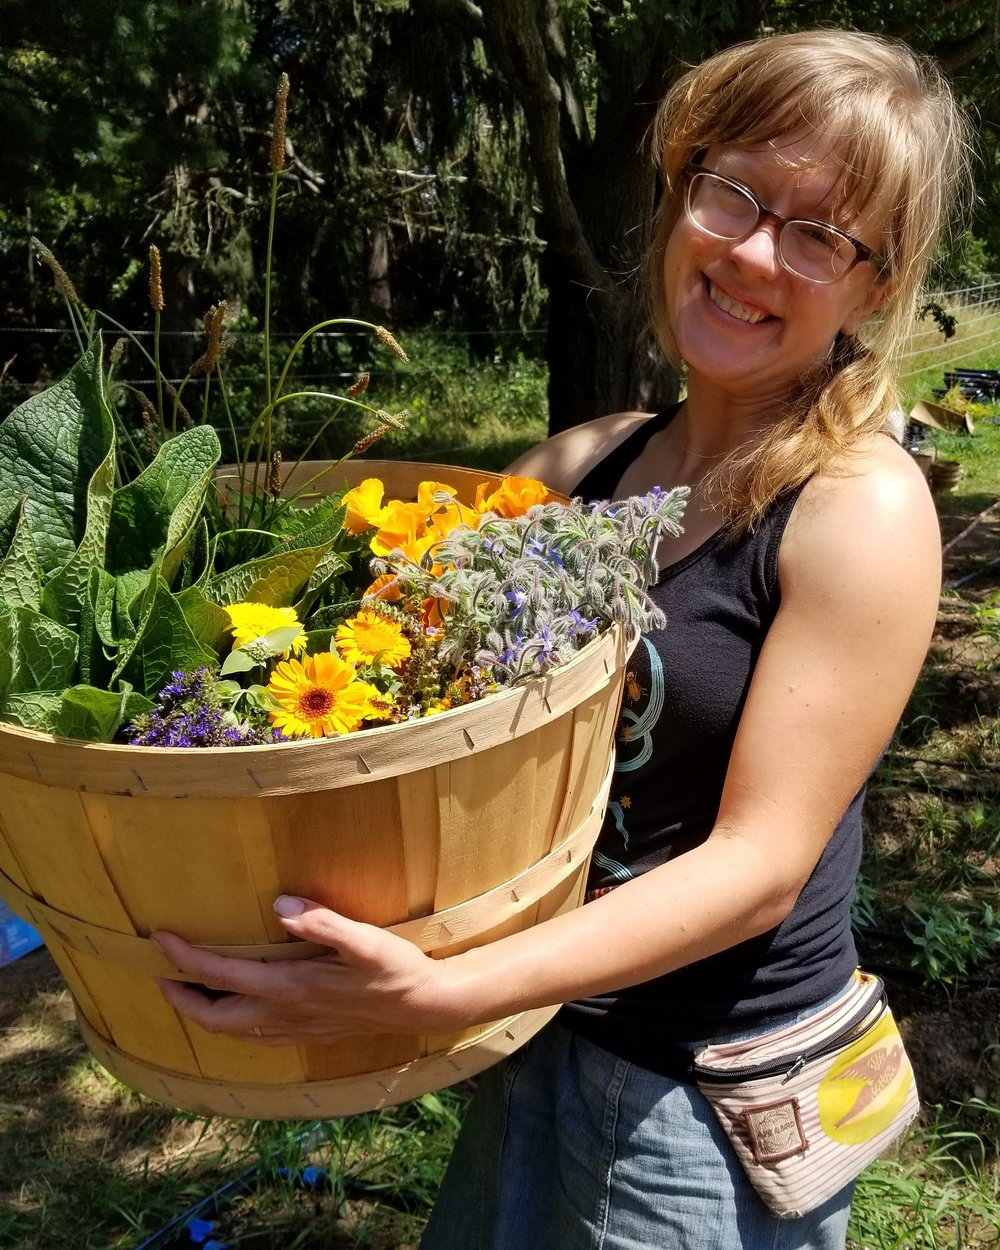 Jenny with a bushel's worth of summer abundance. Clockwise from 9 o'clock: Russian Comfrey, Narrow-leaf Plantain, California Poppy, Borage, Kapoor Tulsi, Calendula, Mountain Mint, and Hyssop.